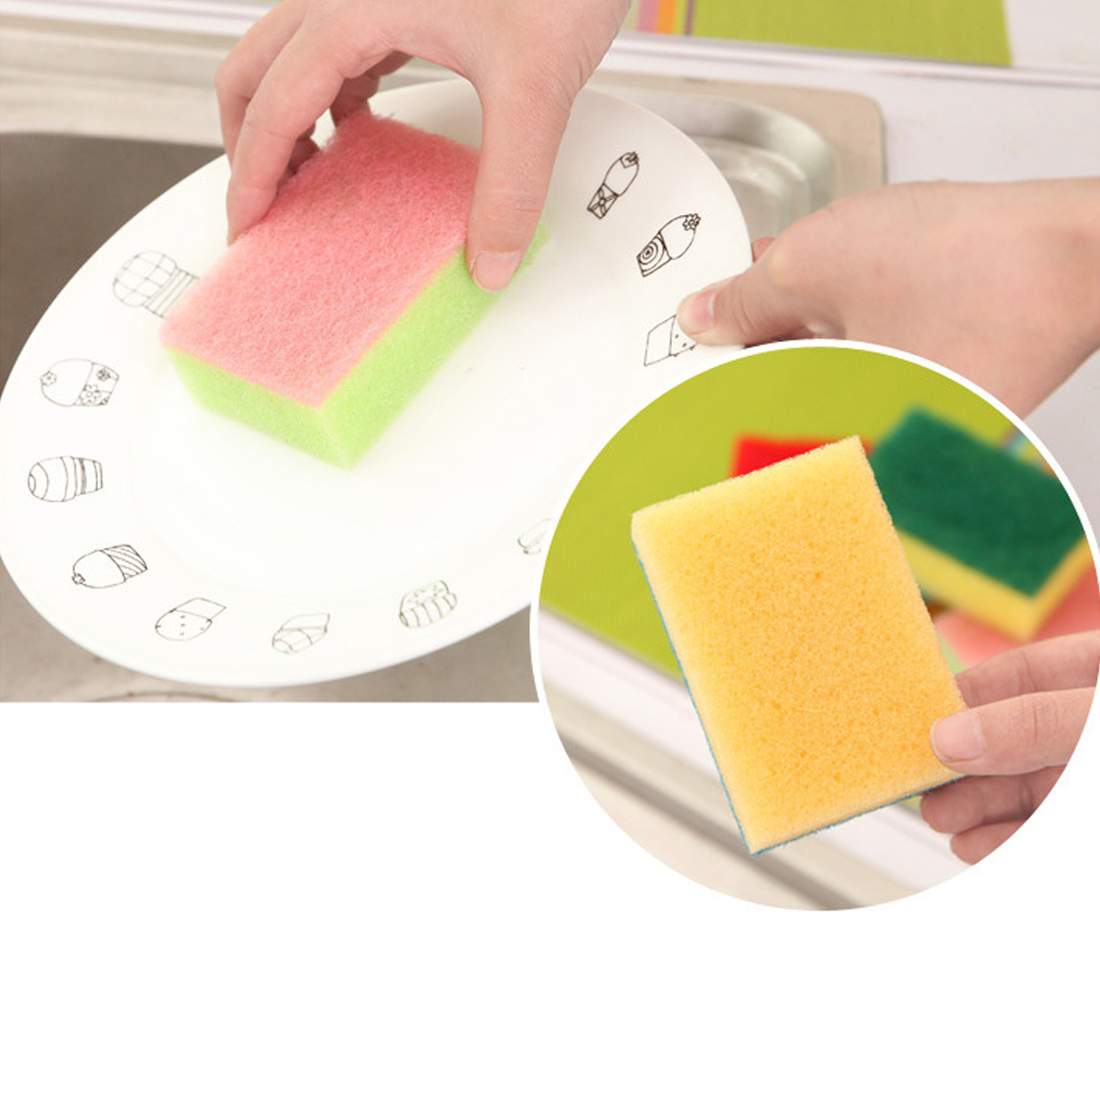 Best Nano Sponge Magic Eraser For Removing Rust Cleaning Cotton Emery Sponge Kitchen Supplies Descaling Clean Rub Pot